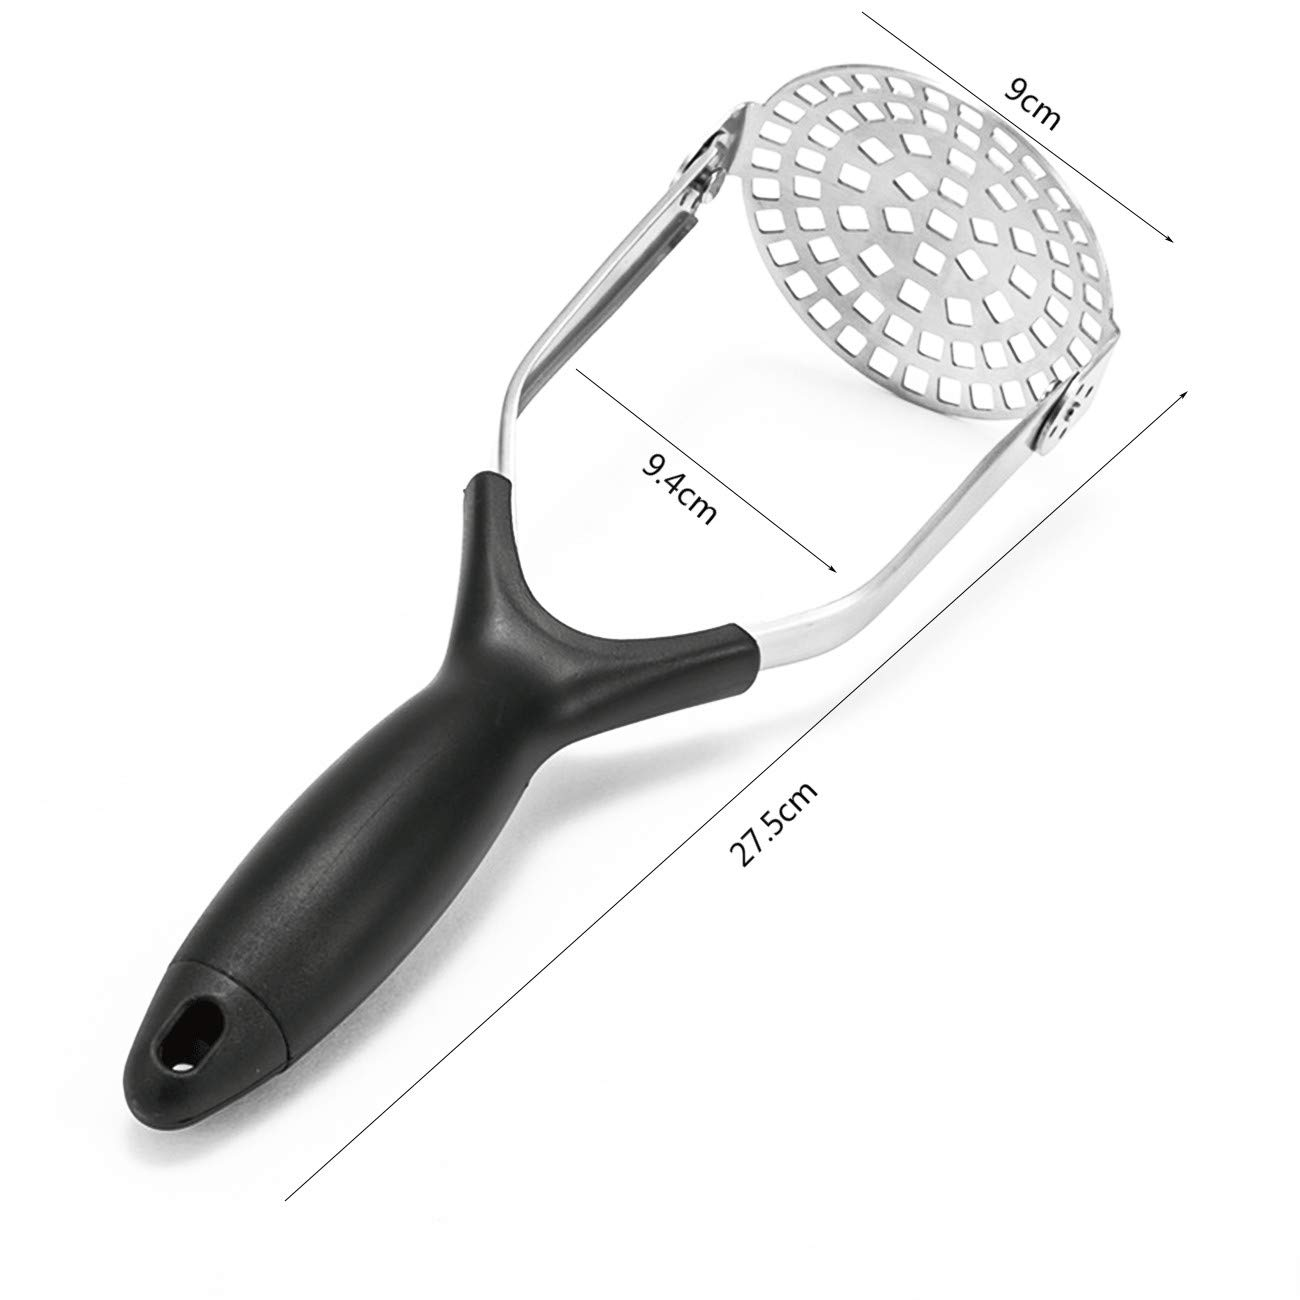 Kakamono Heavy Duty Stainless Steel Potato Masher Fine-grid Mashing Plate for Smooth Mashed Potatoes A Vegetables and Fruits